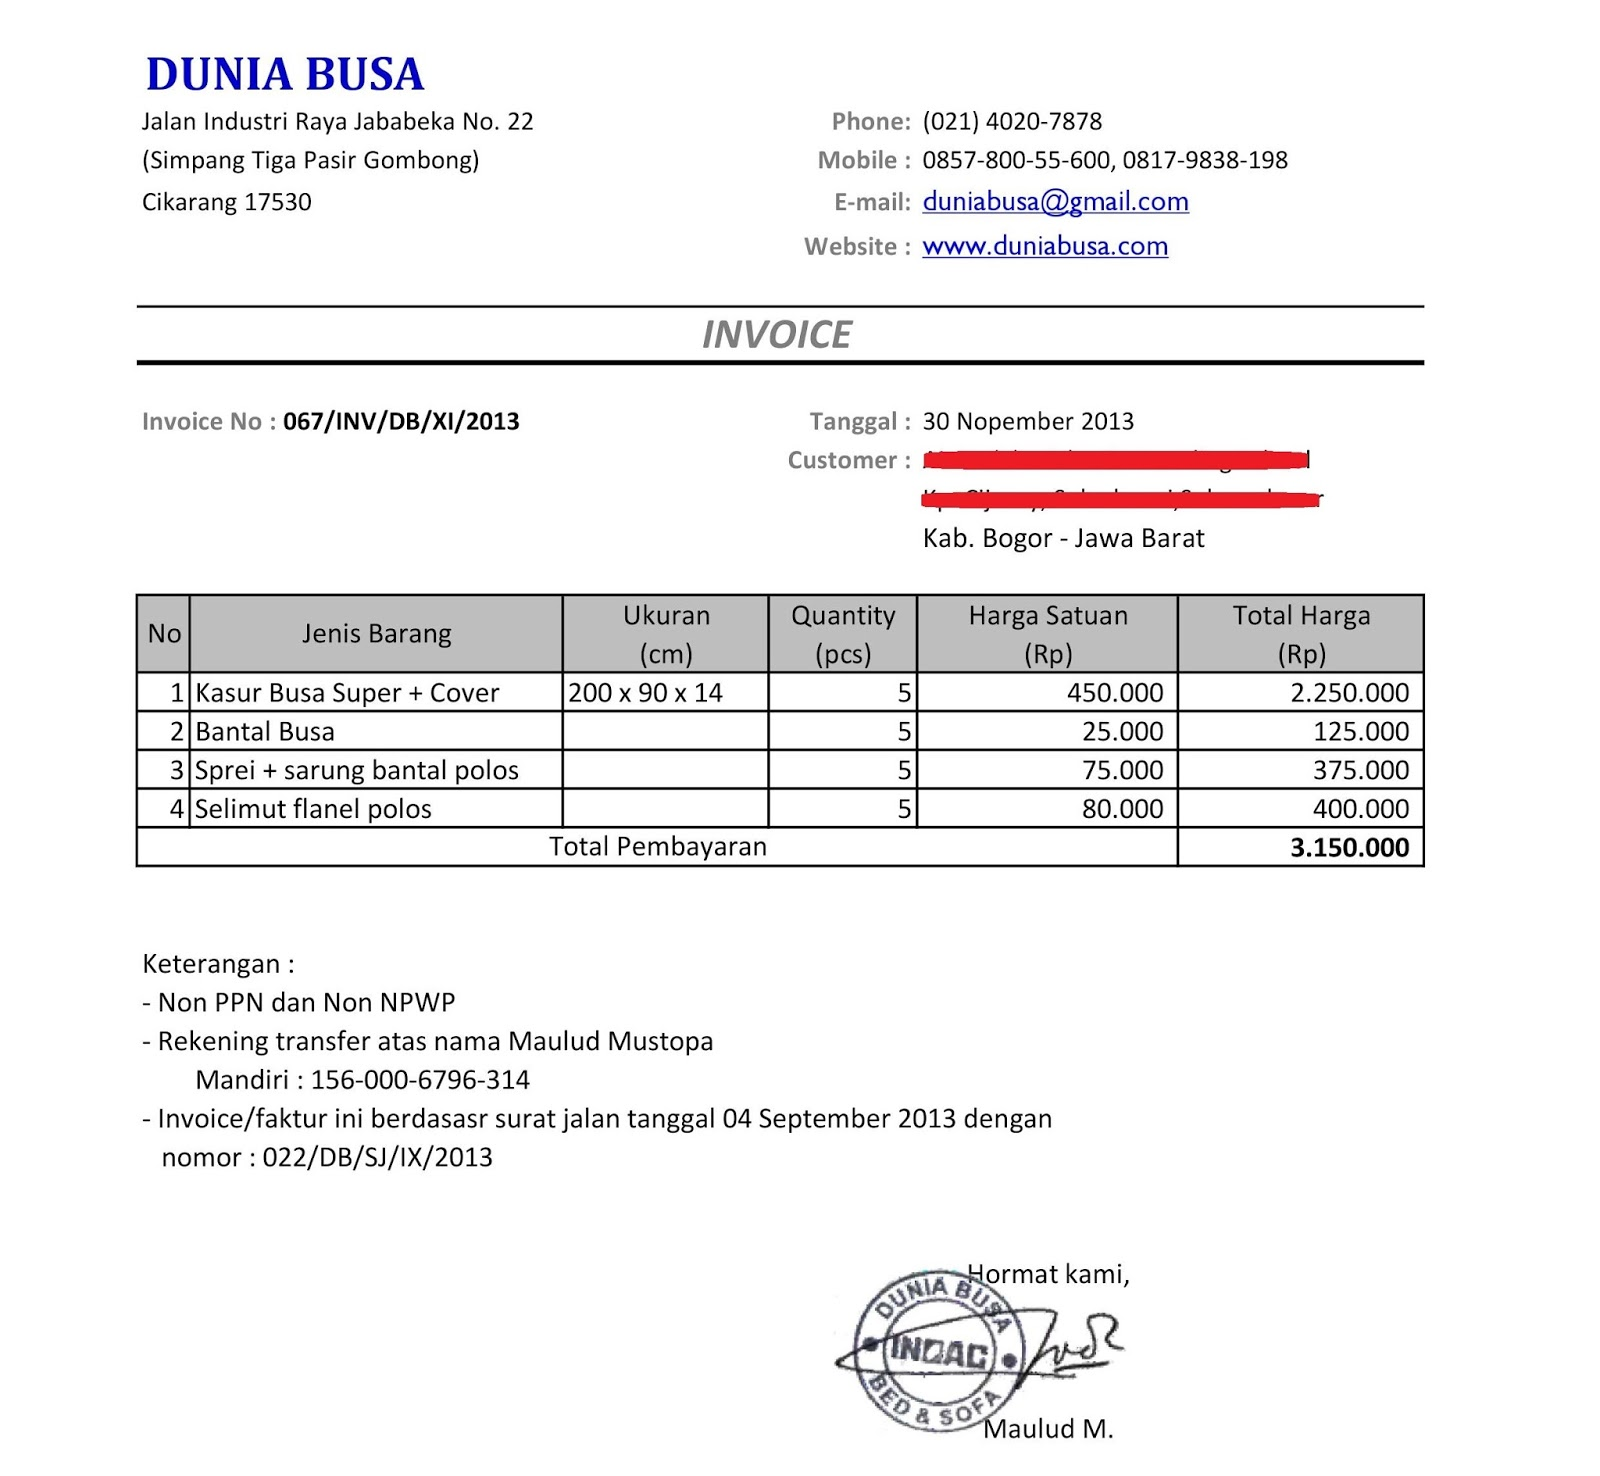 Usdgus  Unusual Free Invoice Online  Create Invoice Online  Invoice Template  With Handsome Contoh Format Invoice Atau Surat Tagihan  Brankas Arsip  Free Invoice Online With Easy On The Eye Invoice Of Payment Also Invoice Template Maker In Addition Tax Invoice Without Abn And Invoice Statement Example As Well As An Example Of An Invoice Additionally Free Invoice Templates Online From Sklepco With Usdgus  Handsome Free Invoice Online  Create Invoice Online  Invoice Template  With Easy On The Eye Contoh Format Invoice Atau Surat Tagihan  Brankas Arsip  Free Invoice Online And Unusual Invoice Of Payment Also Invoice Template Maker In Addition Tax Invoice Without Abn From Sklepco